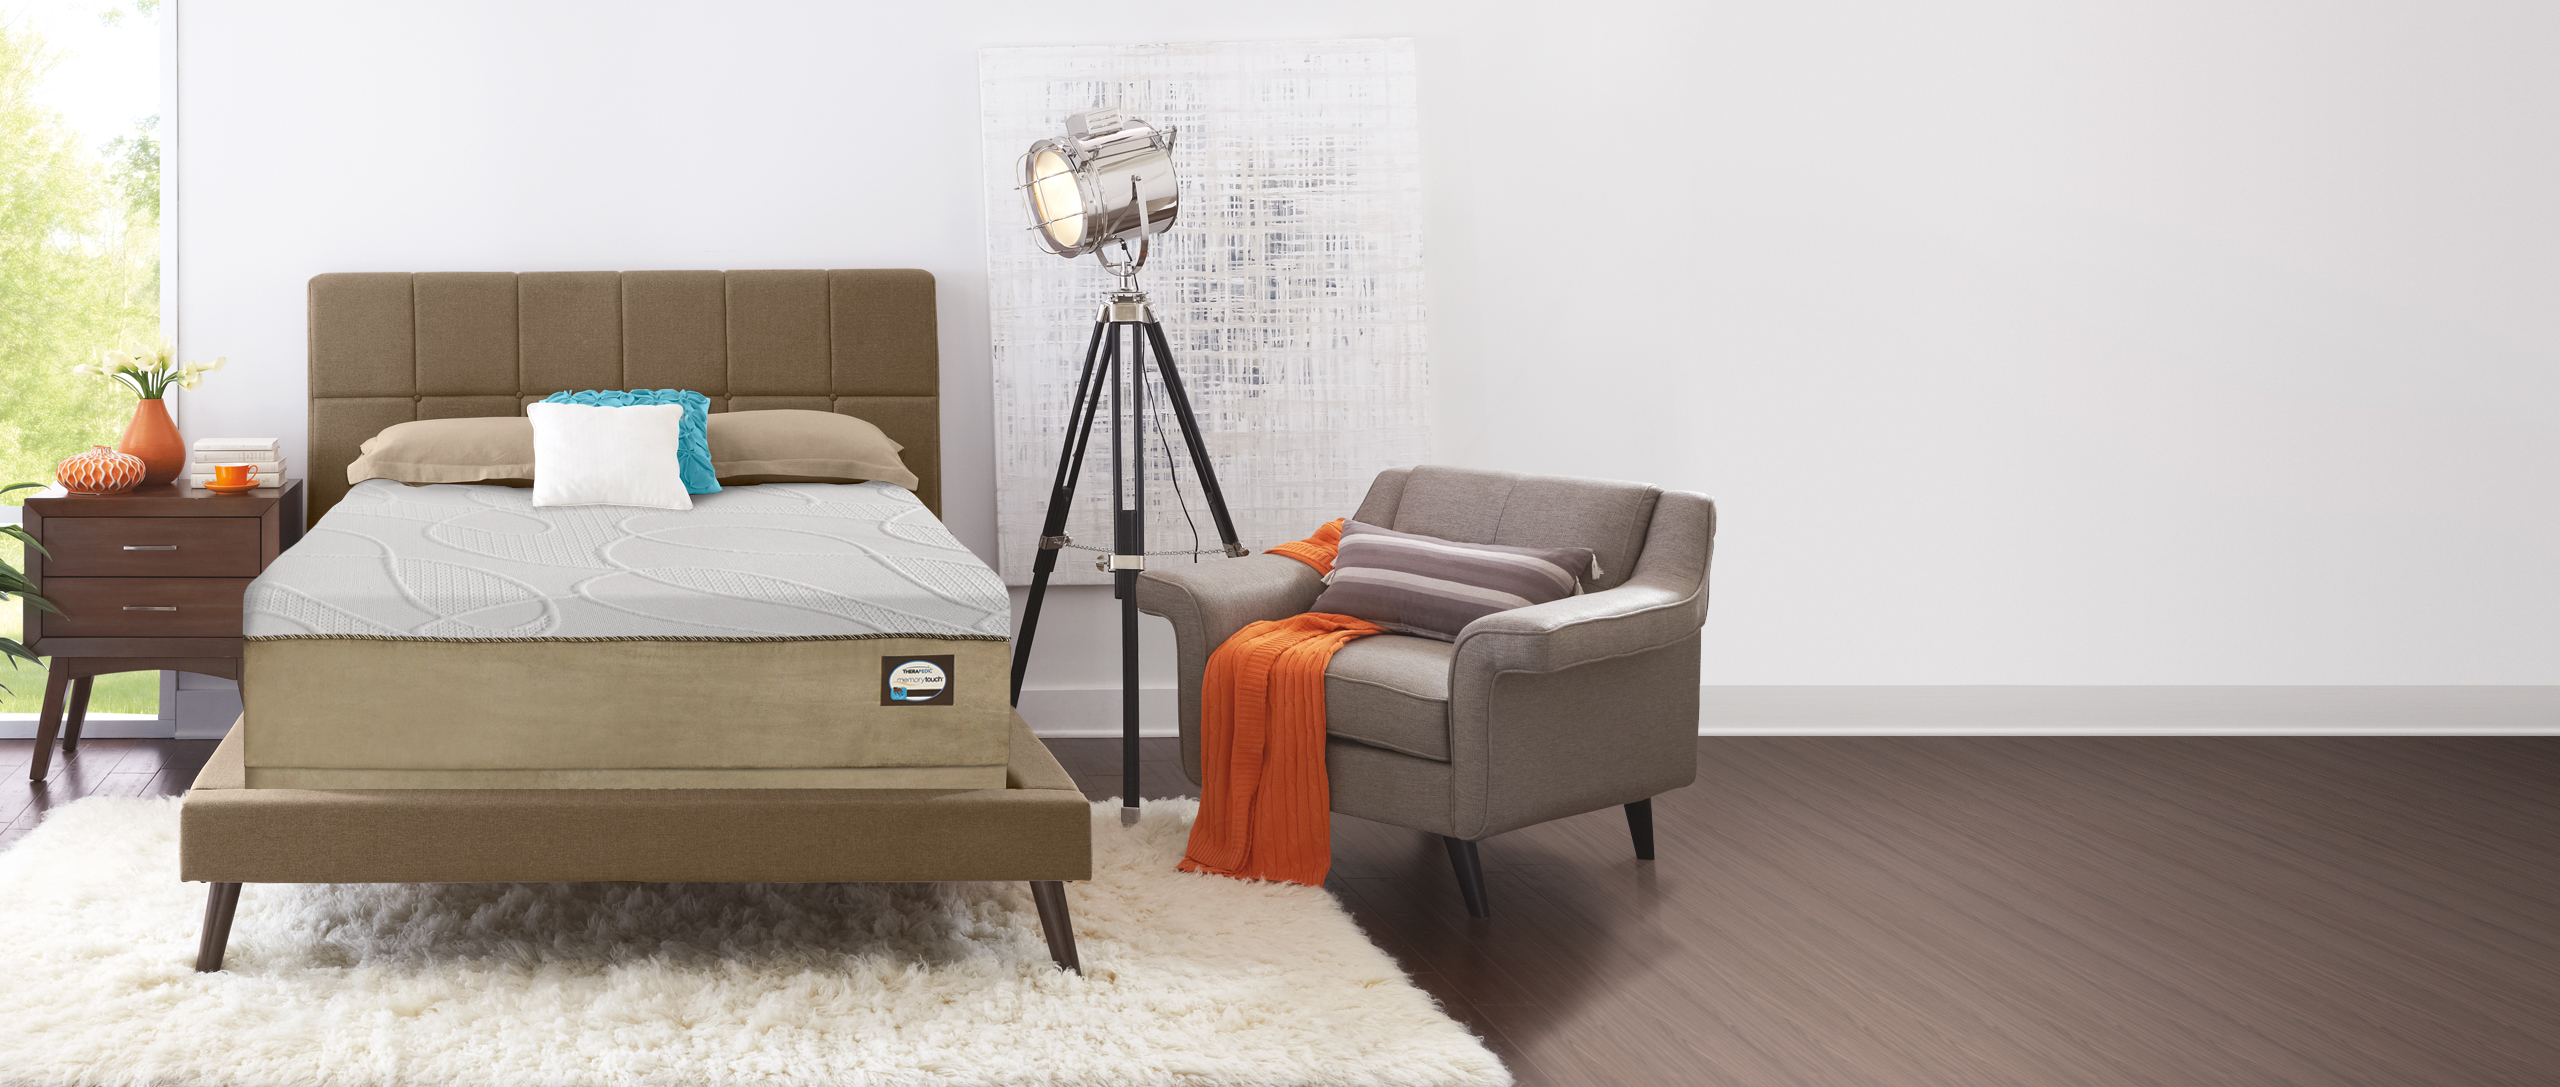 Specialty MemoryTouch Mattress in a bedroom setting